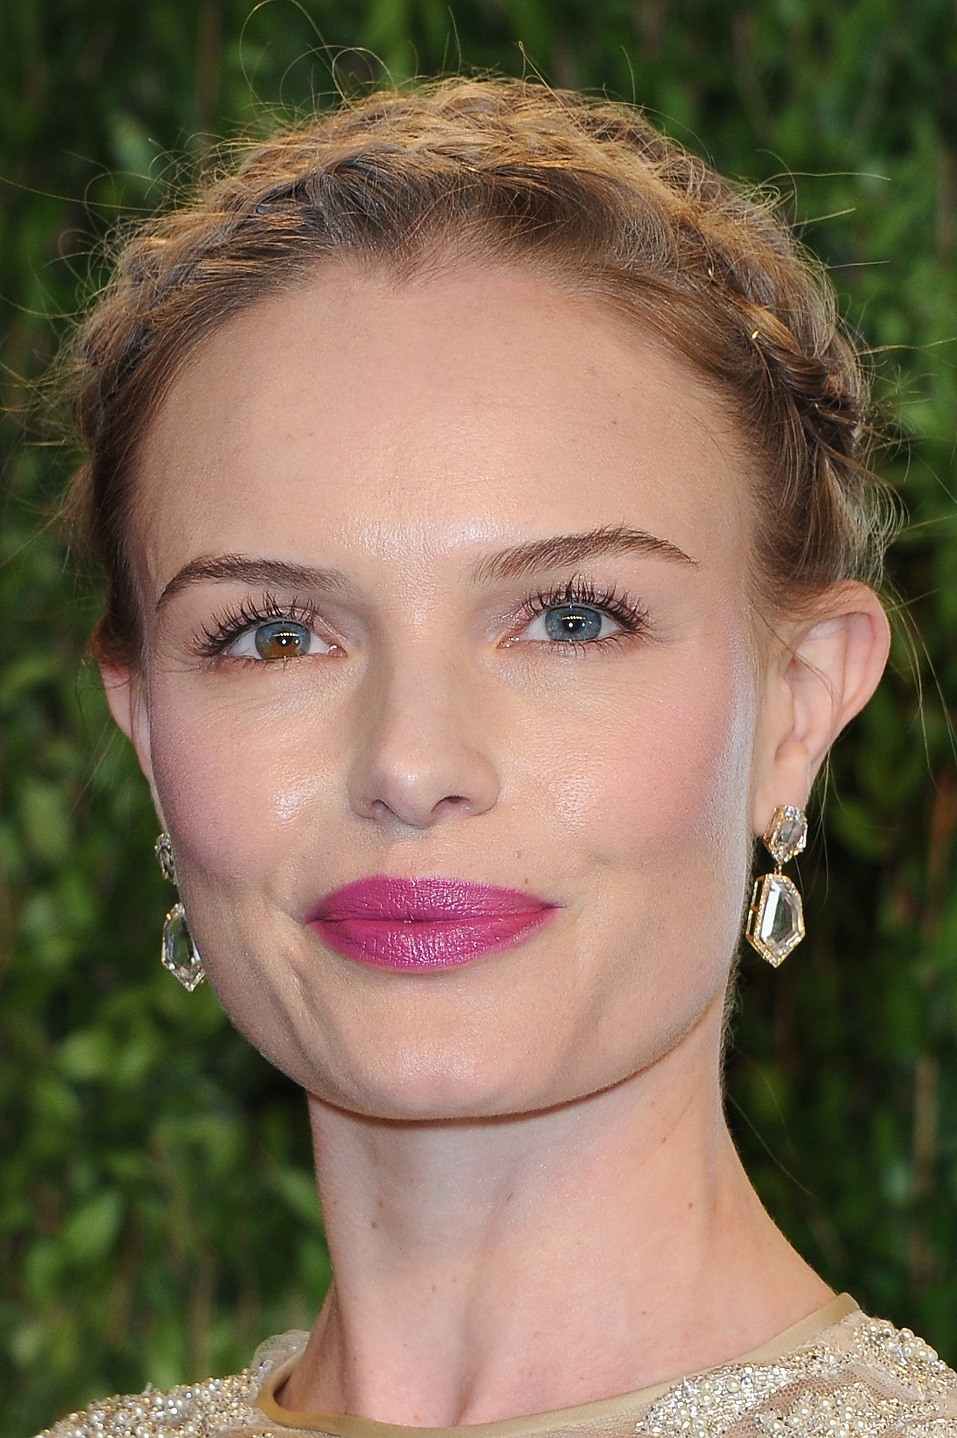 Actress Kate Bosworth arrives at the 2013 Vanity Fair Oscar Party hosted by Graydon Carter